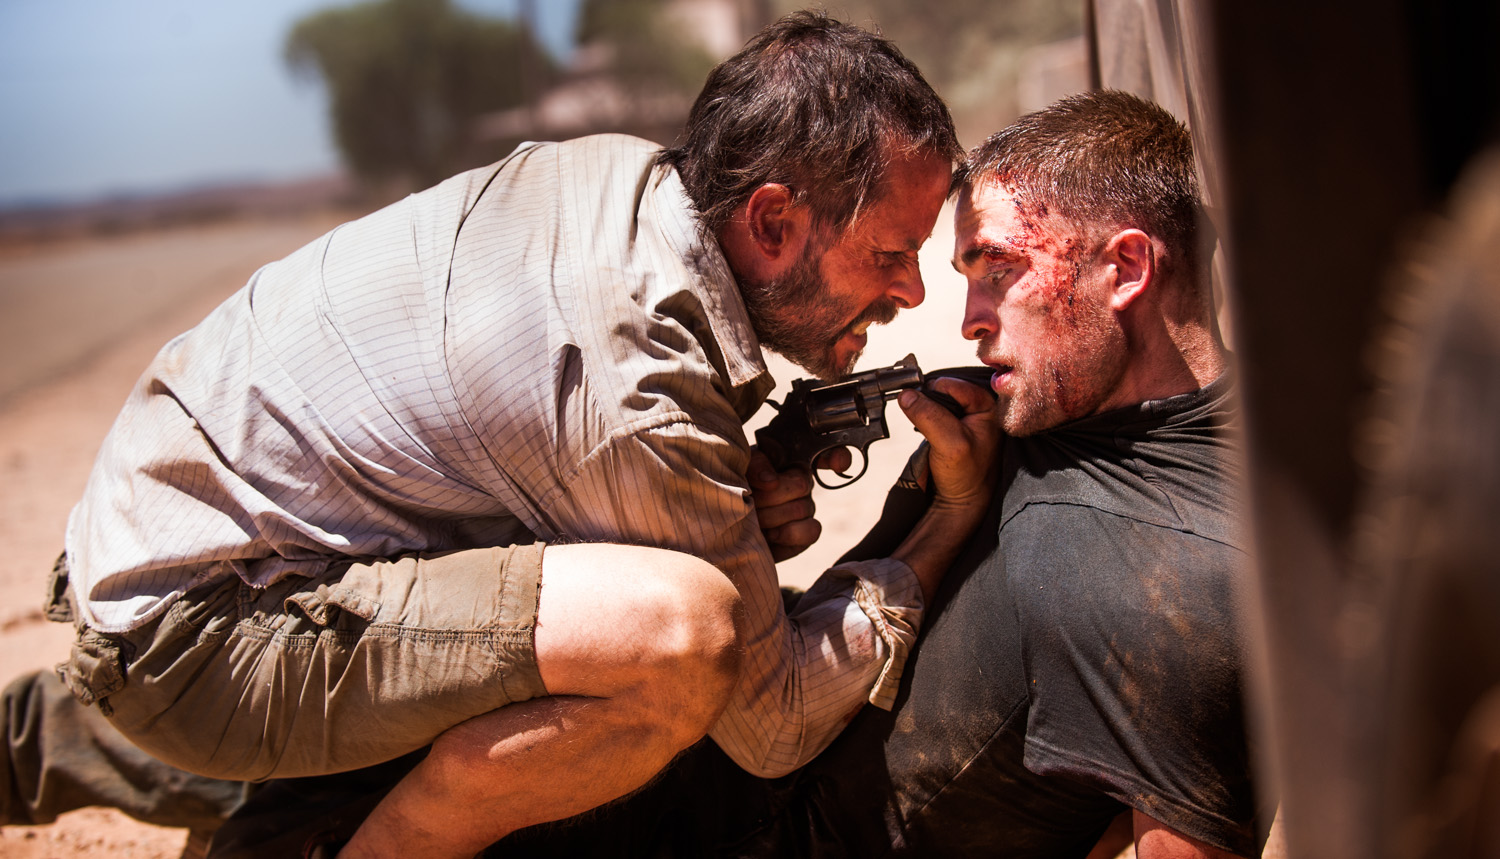 Guy Pearce and Robert Pattinson in The Rover (2014)